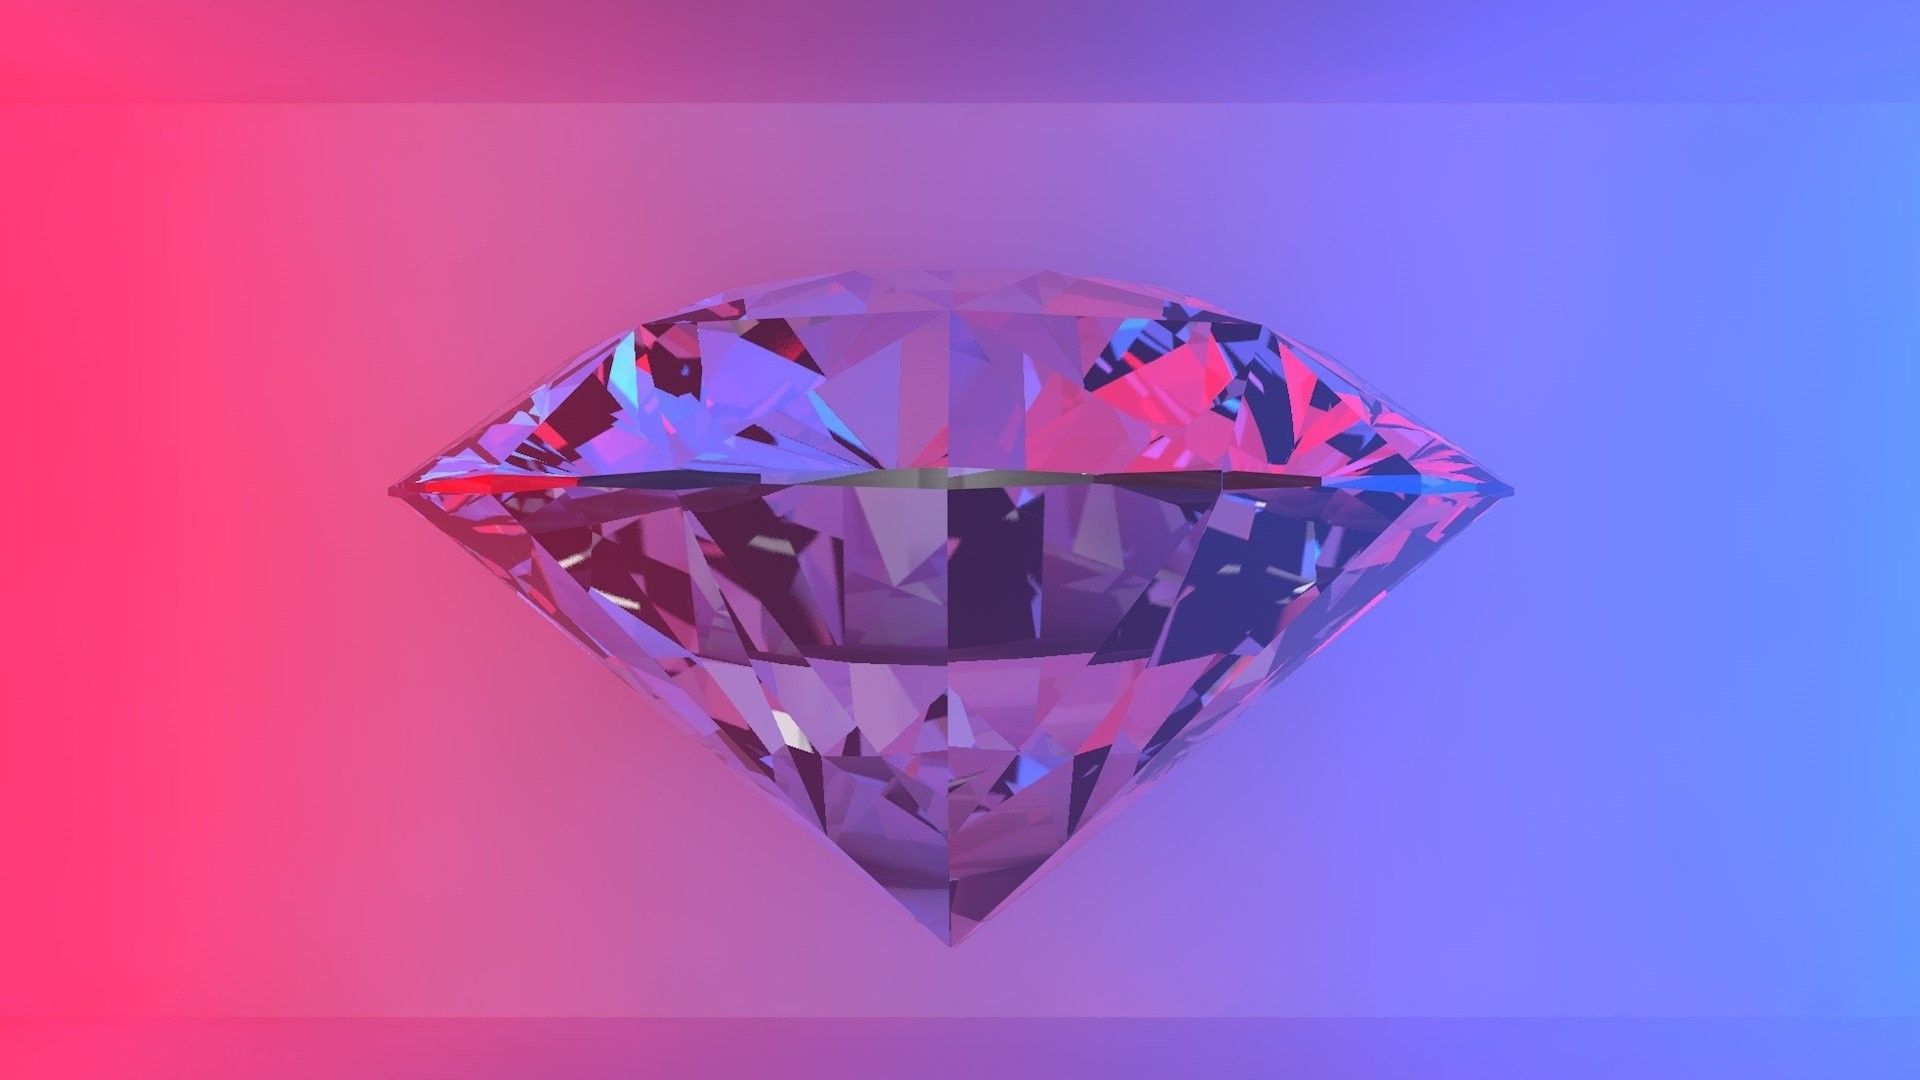 Diamond hd desktop wallpaper